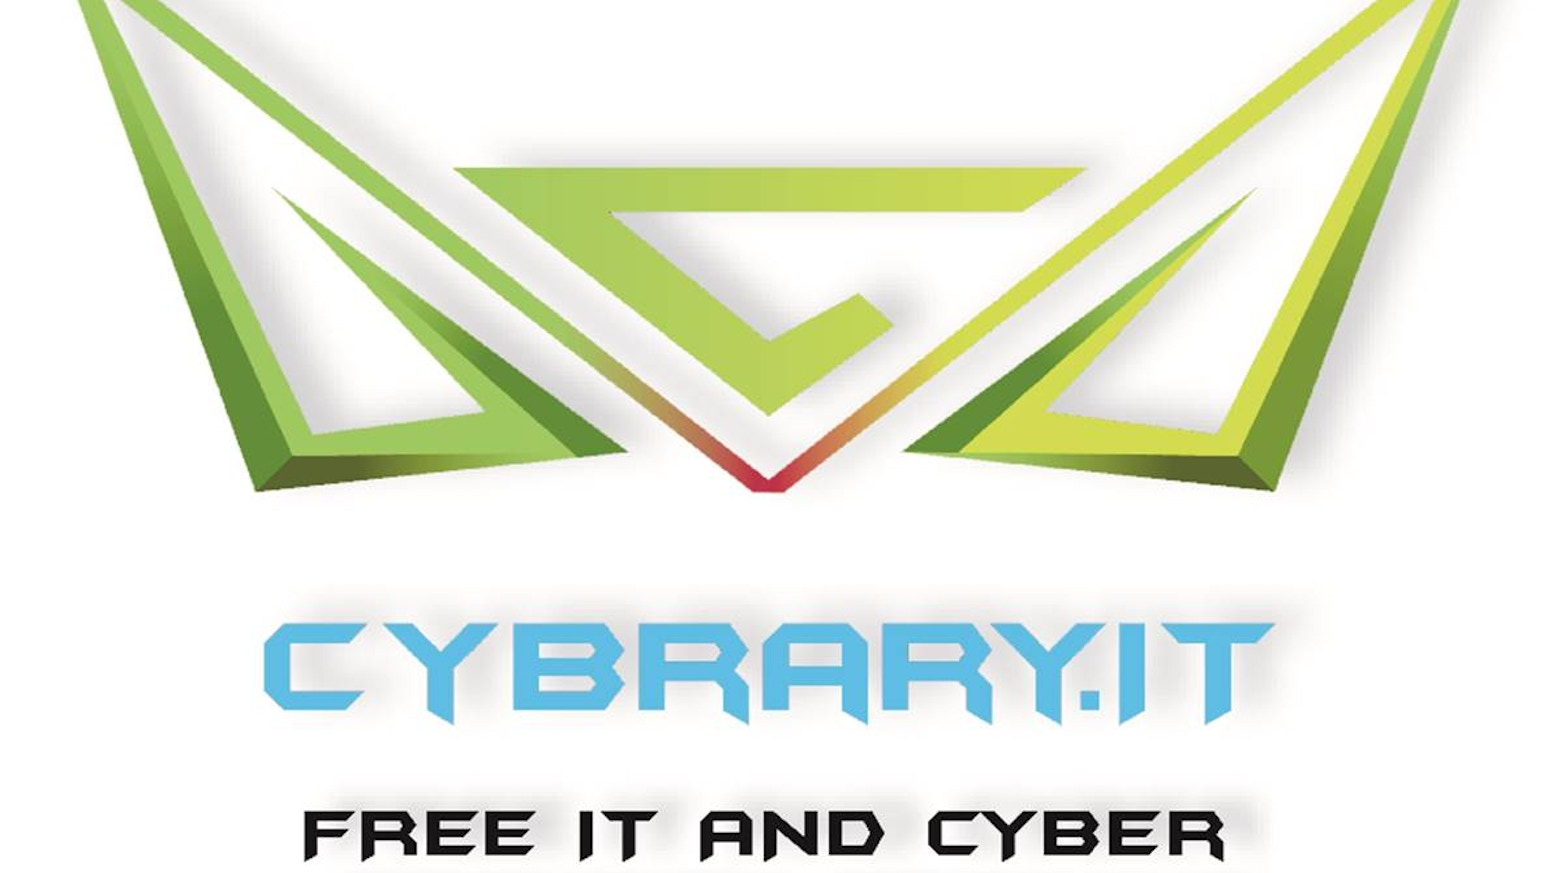 Cybrary revolutionizes IT and Cyber Security learning by making the best training curriculum available to anyone, for free, forever.